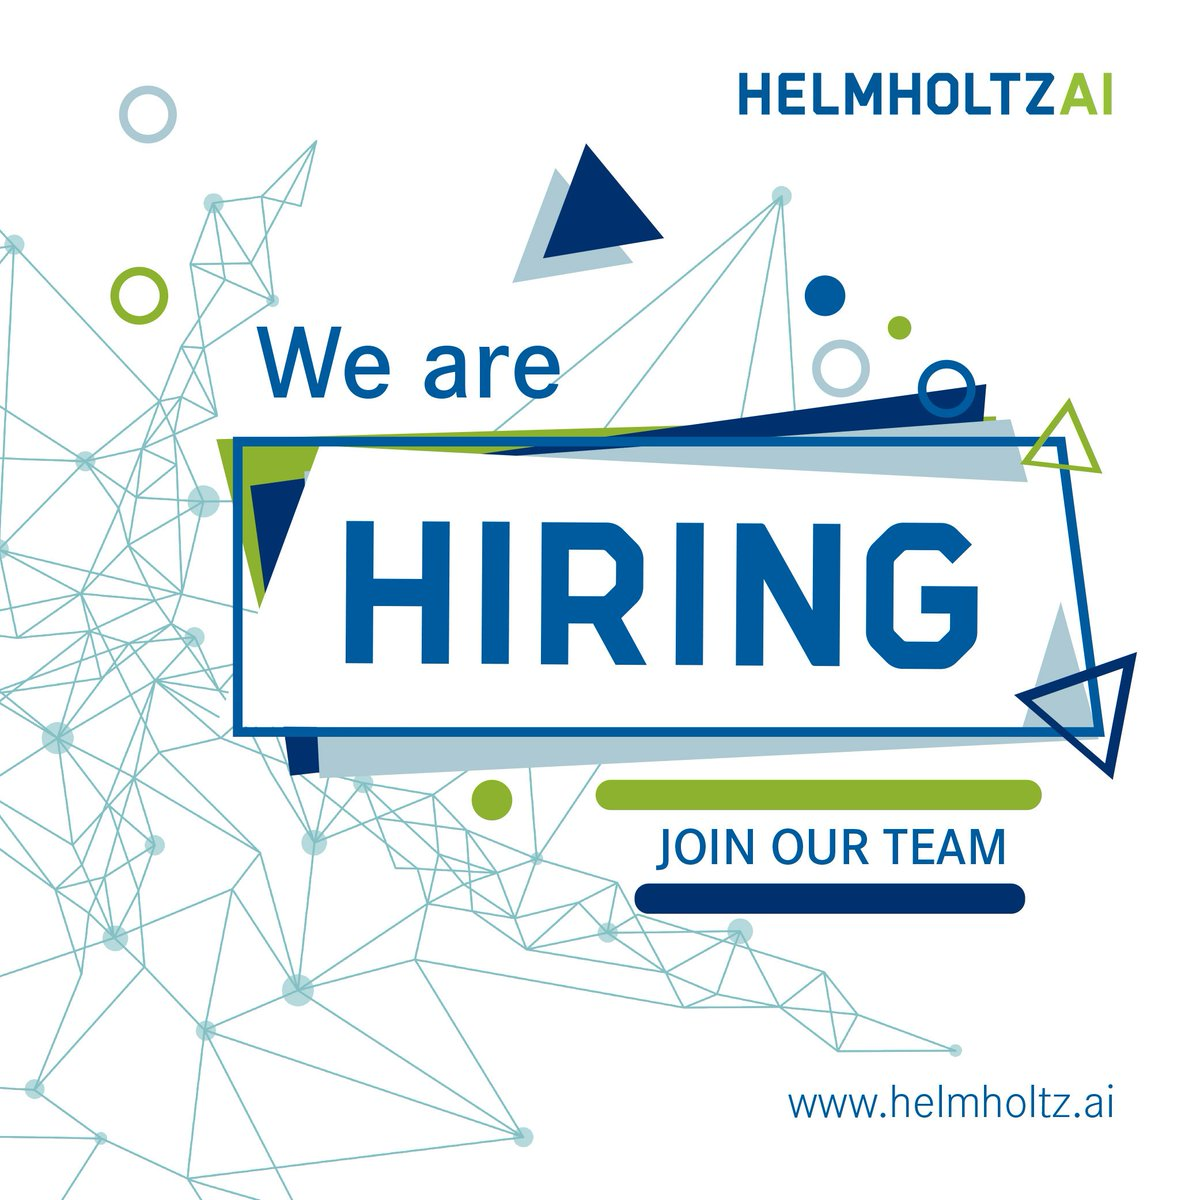 You want to do reasearch on #OpenScience in AI/stats/data science?   ▶️ Join my group on *Open AI in Health* @helmholtz_ai!  3 year position with possibility to do a PhD 🎓  https://t.co/hbEtUq9R6J  Please share/RT! 👏 https://t.co/u7FIgzm5wR